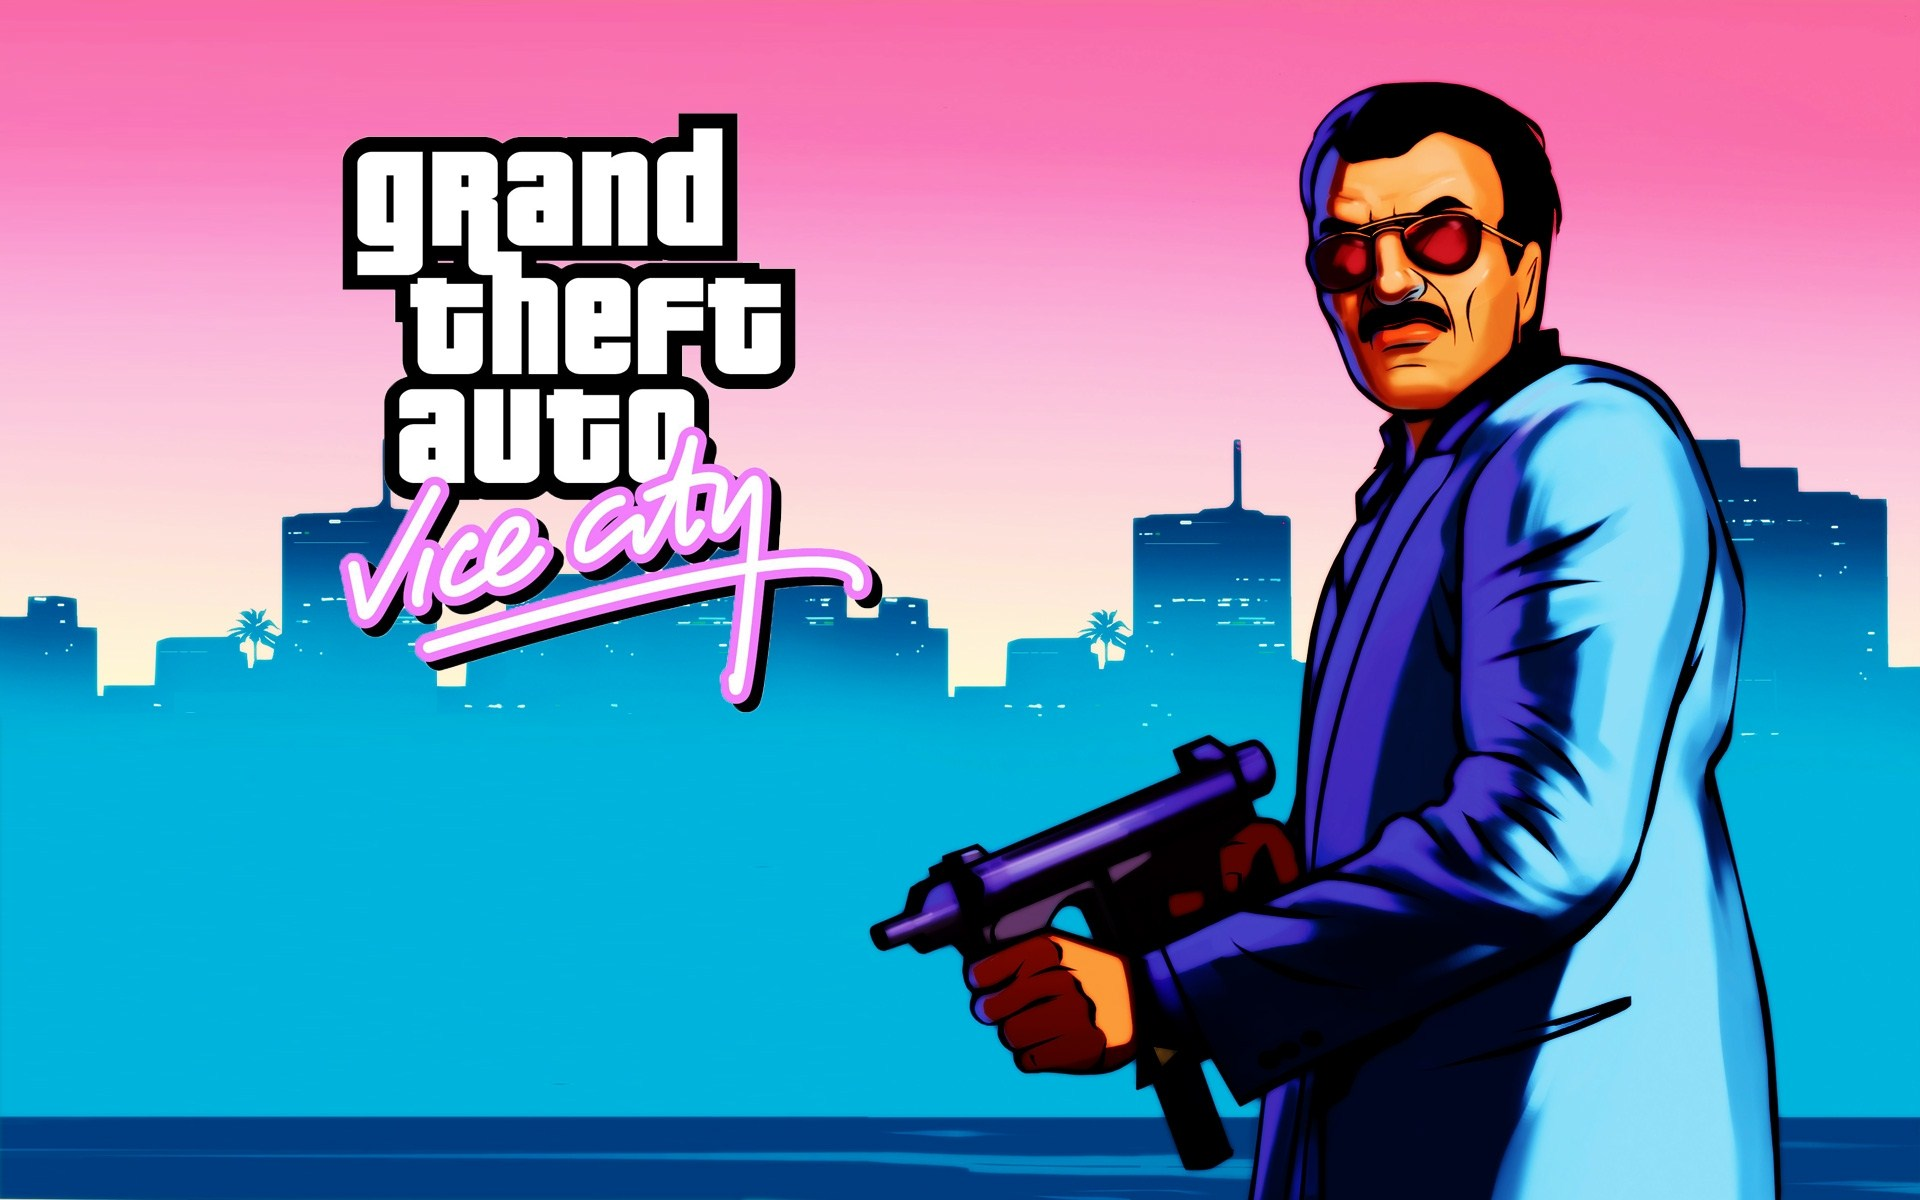 gtavicecity full hd wallpaper and background image